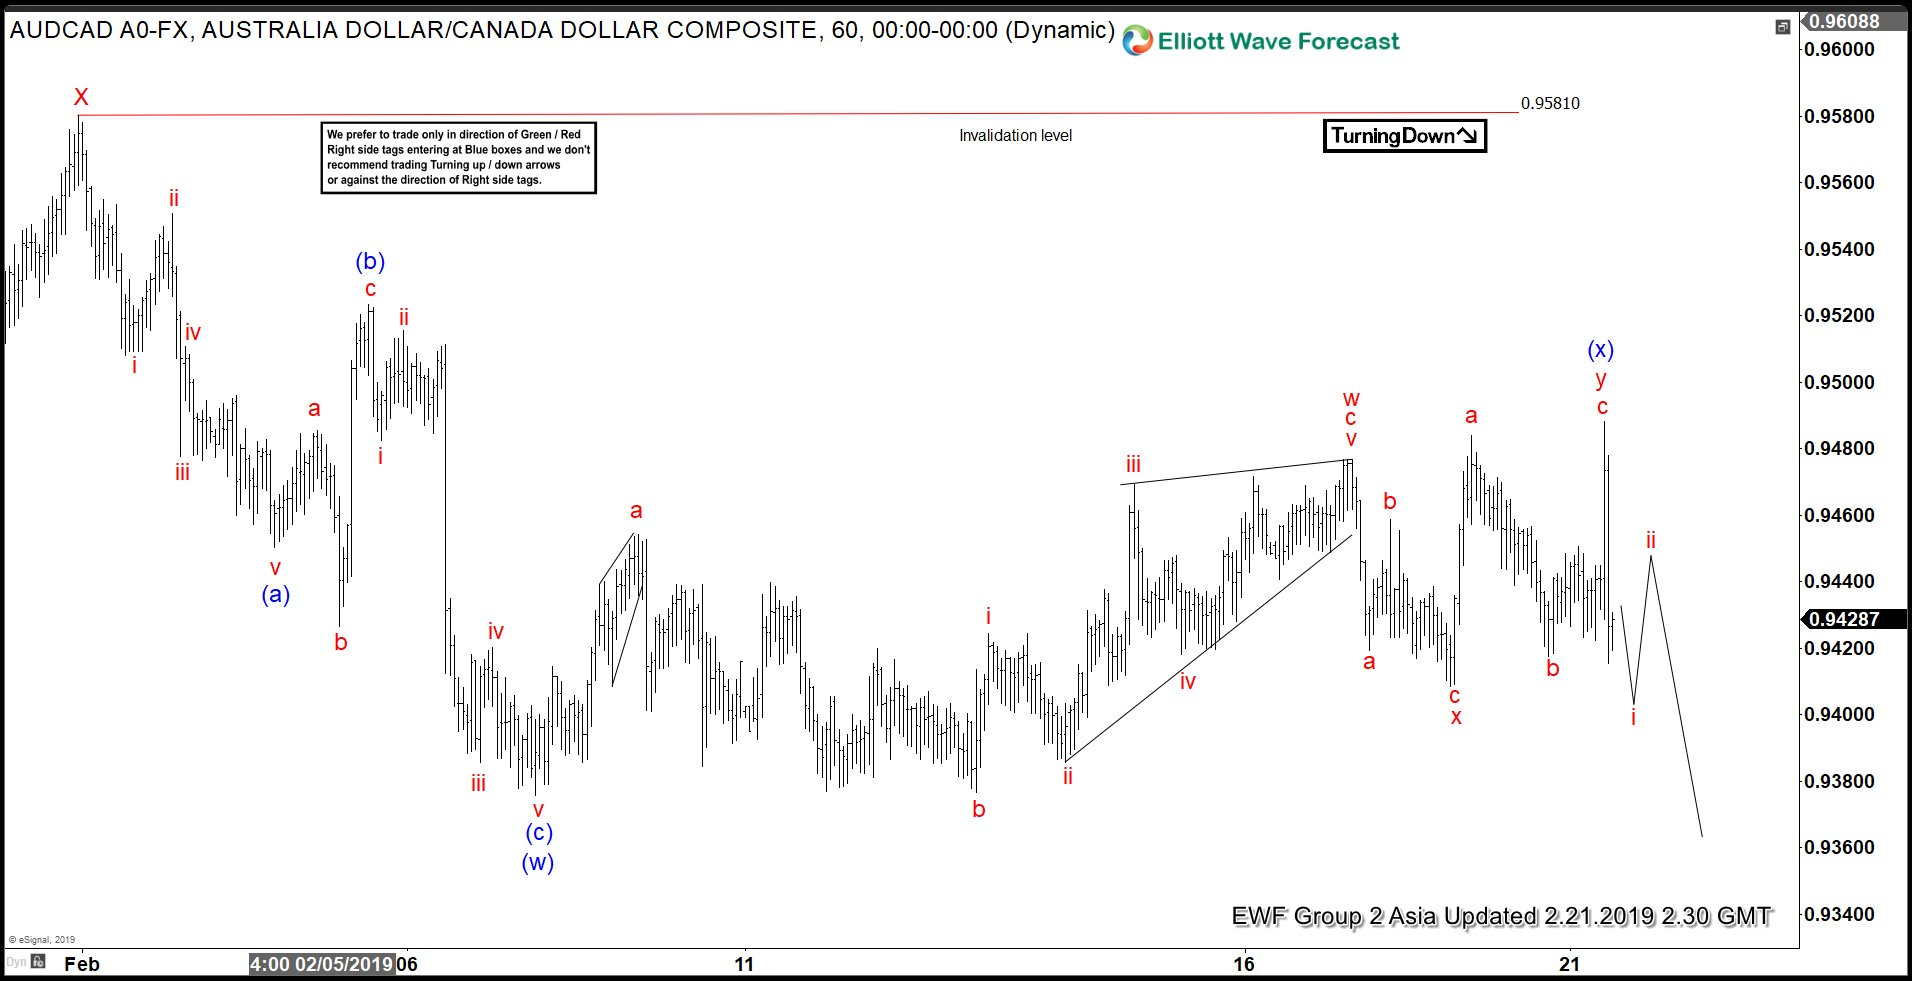 AUDCAD Elliott Wave View: Forecasting The Decline